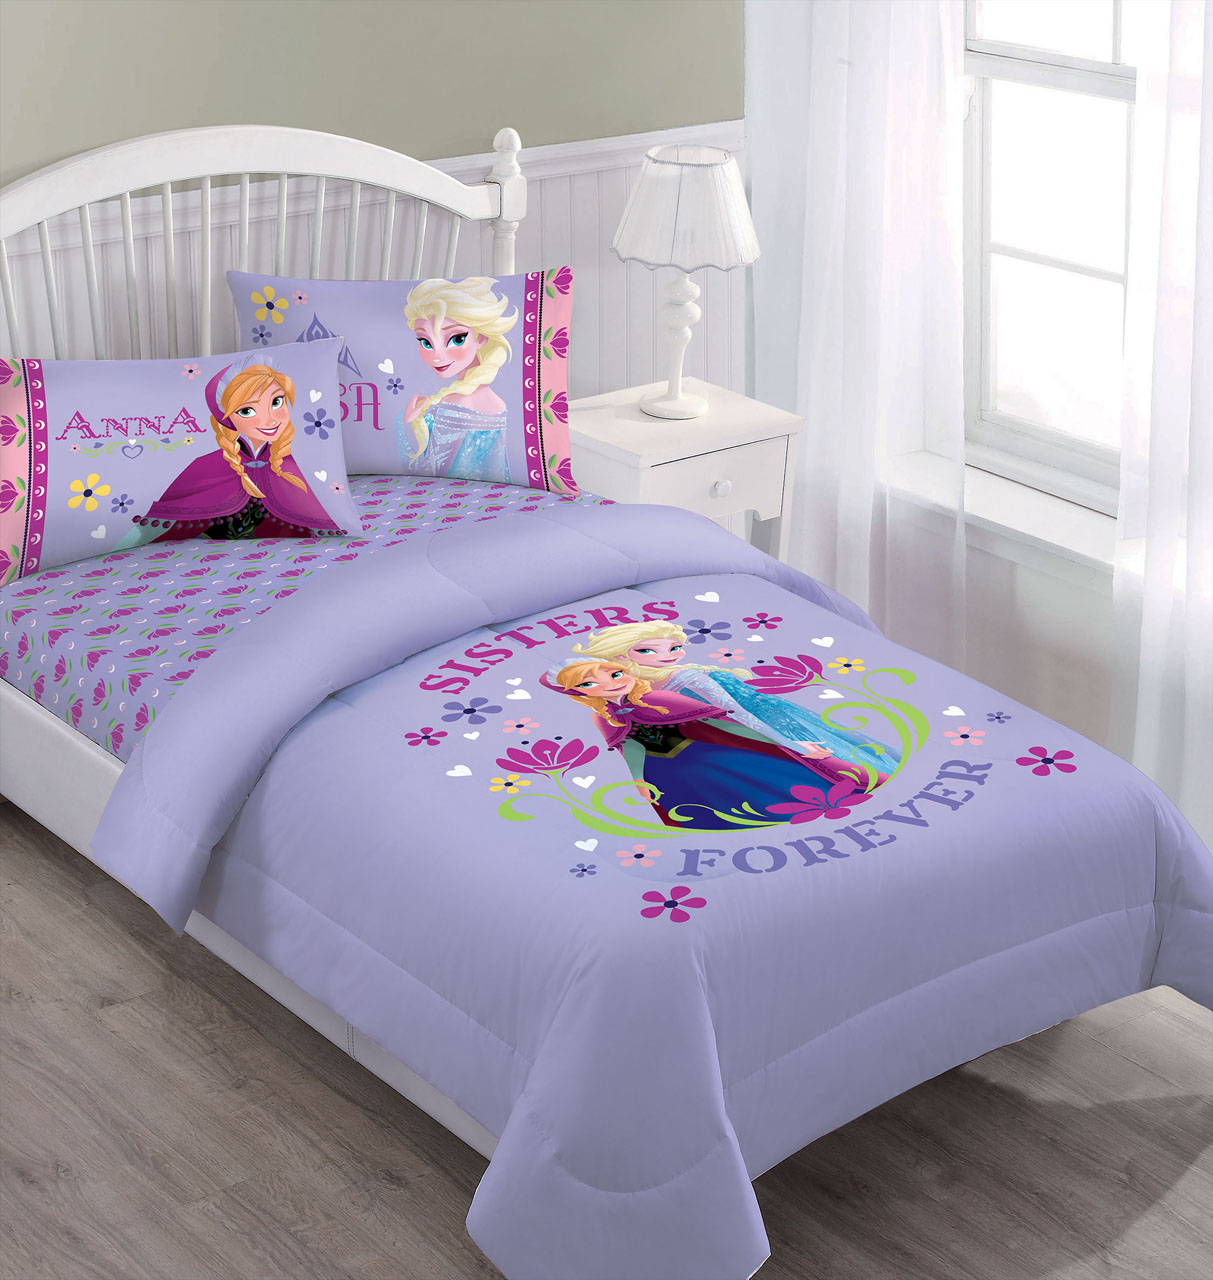 Marvelous Disney Frozen Nordic Summer Florals Full Comforter Set With Fitted Sheet    Walmart.com